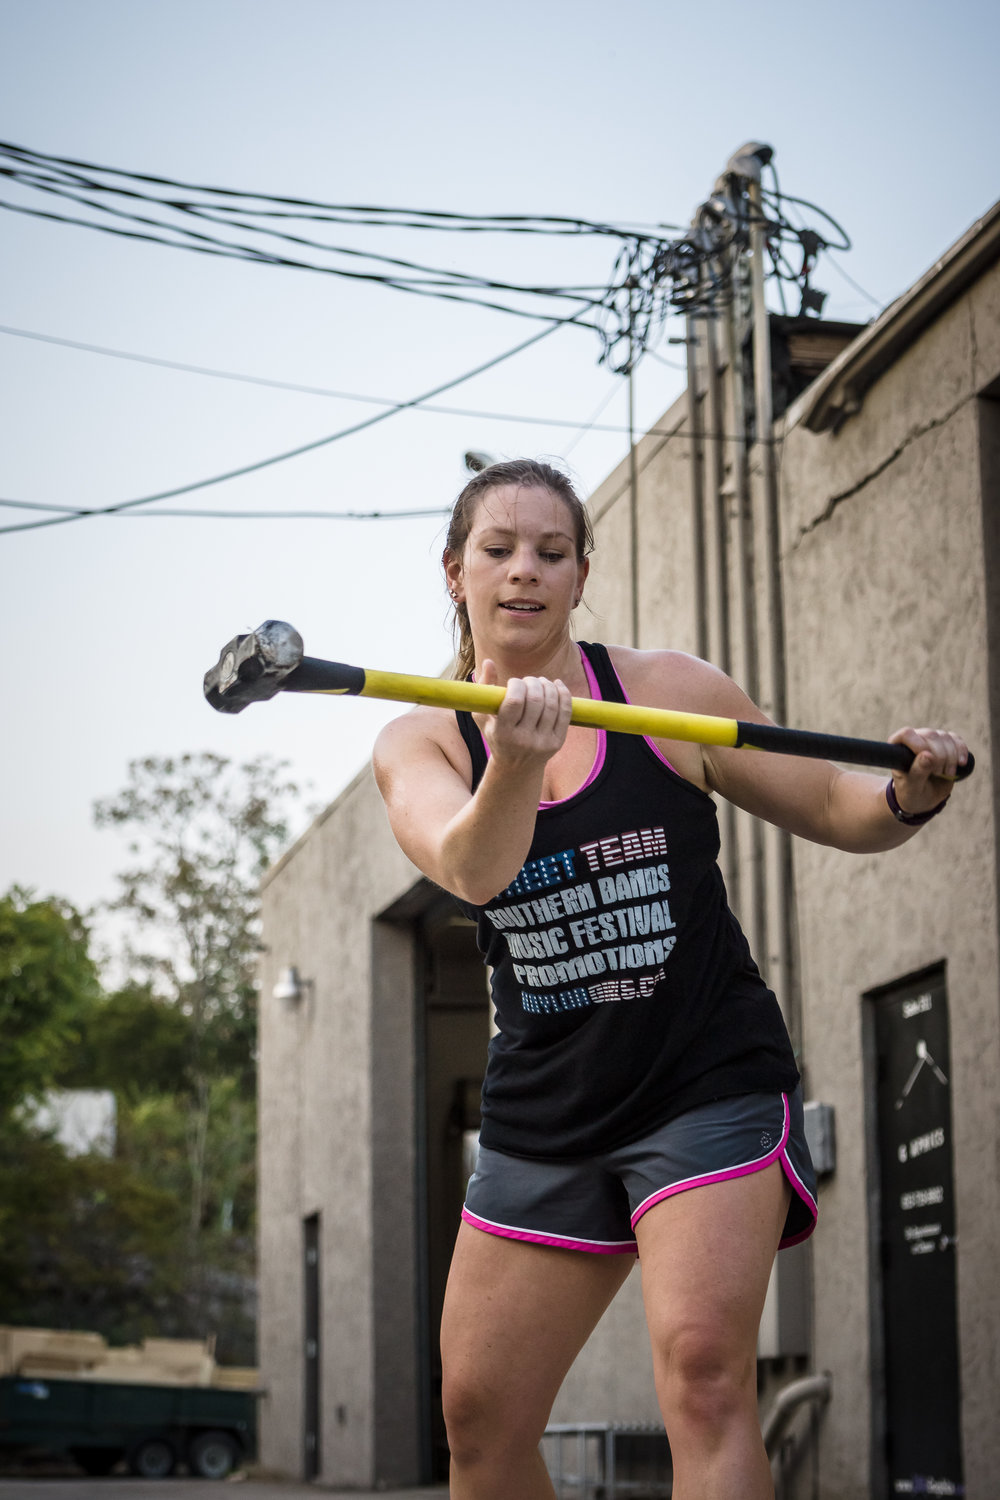 Crossfit Functional Fitness Hammer on Tire Swing